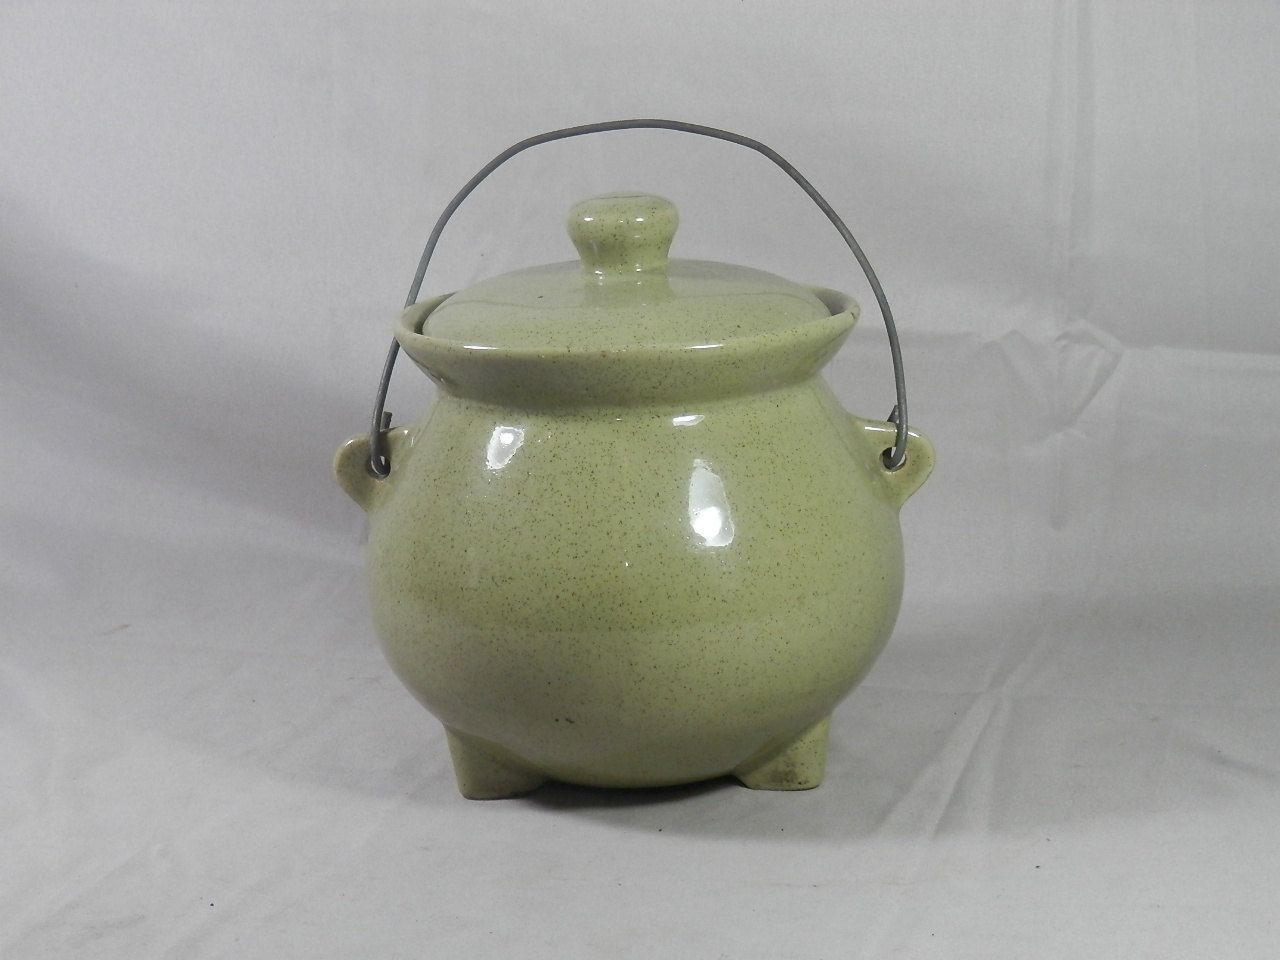 Vintage Stoneware 3 Footed Bean Pot with Lid Bail Handle Avocado Green Tureen Cauldron Kettle Ceramic Pottery by WesternKyRustic on Etsy